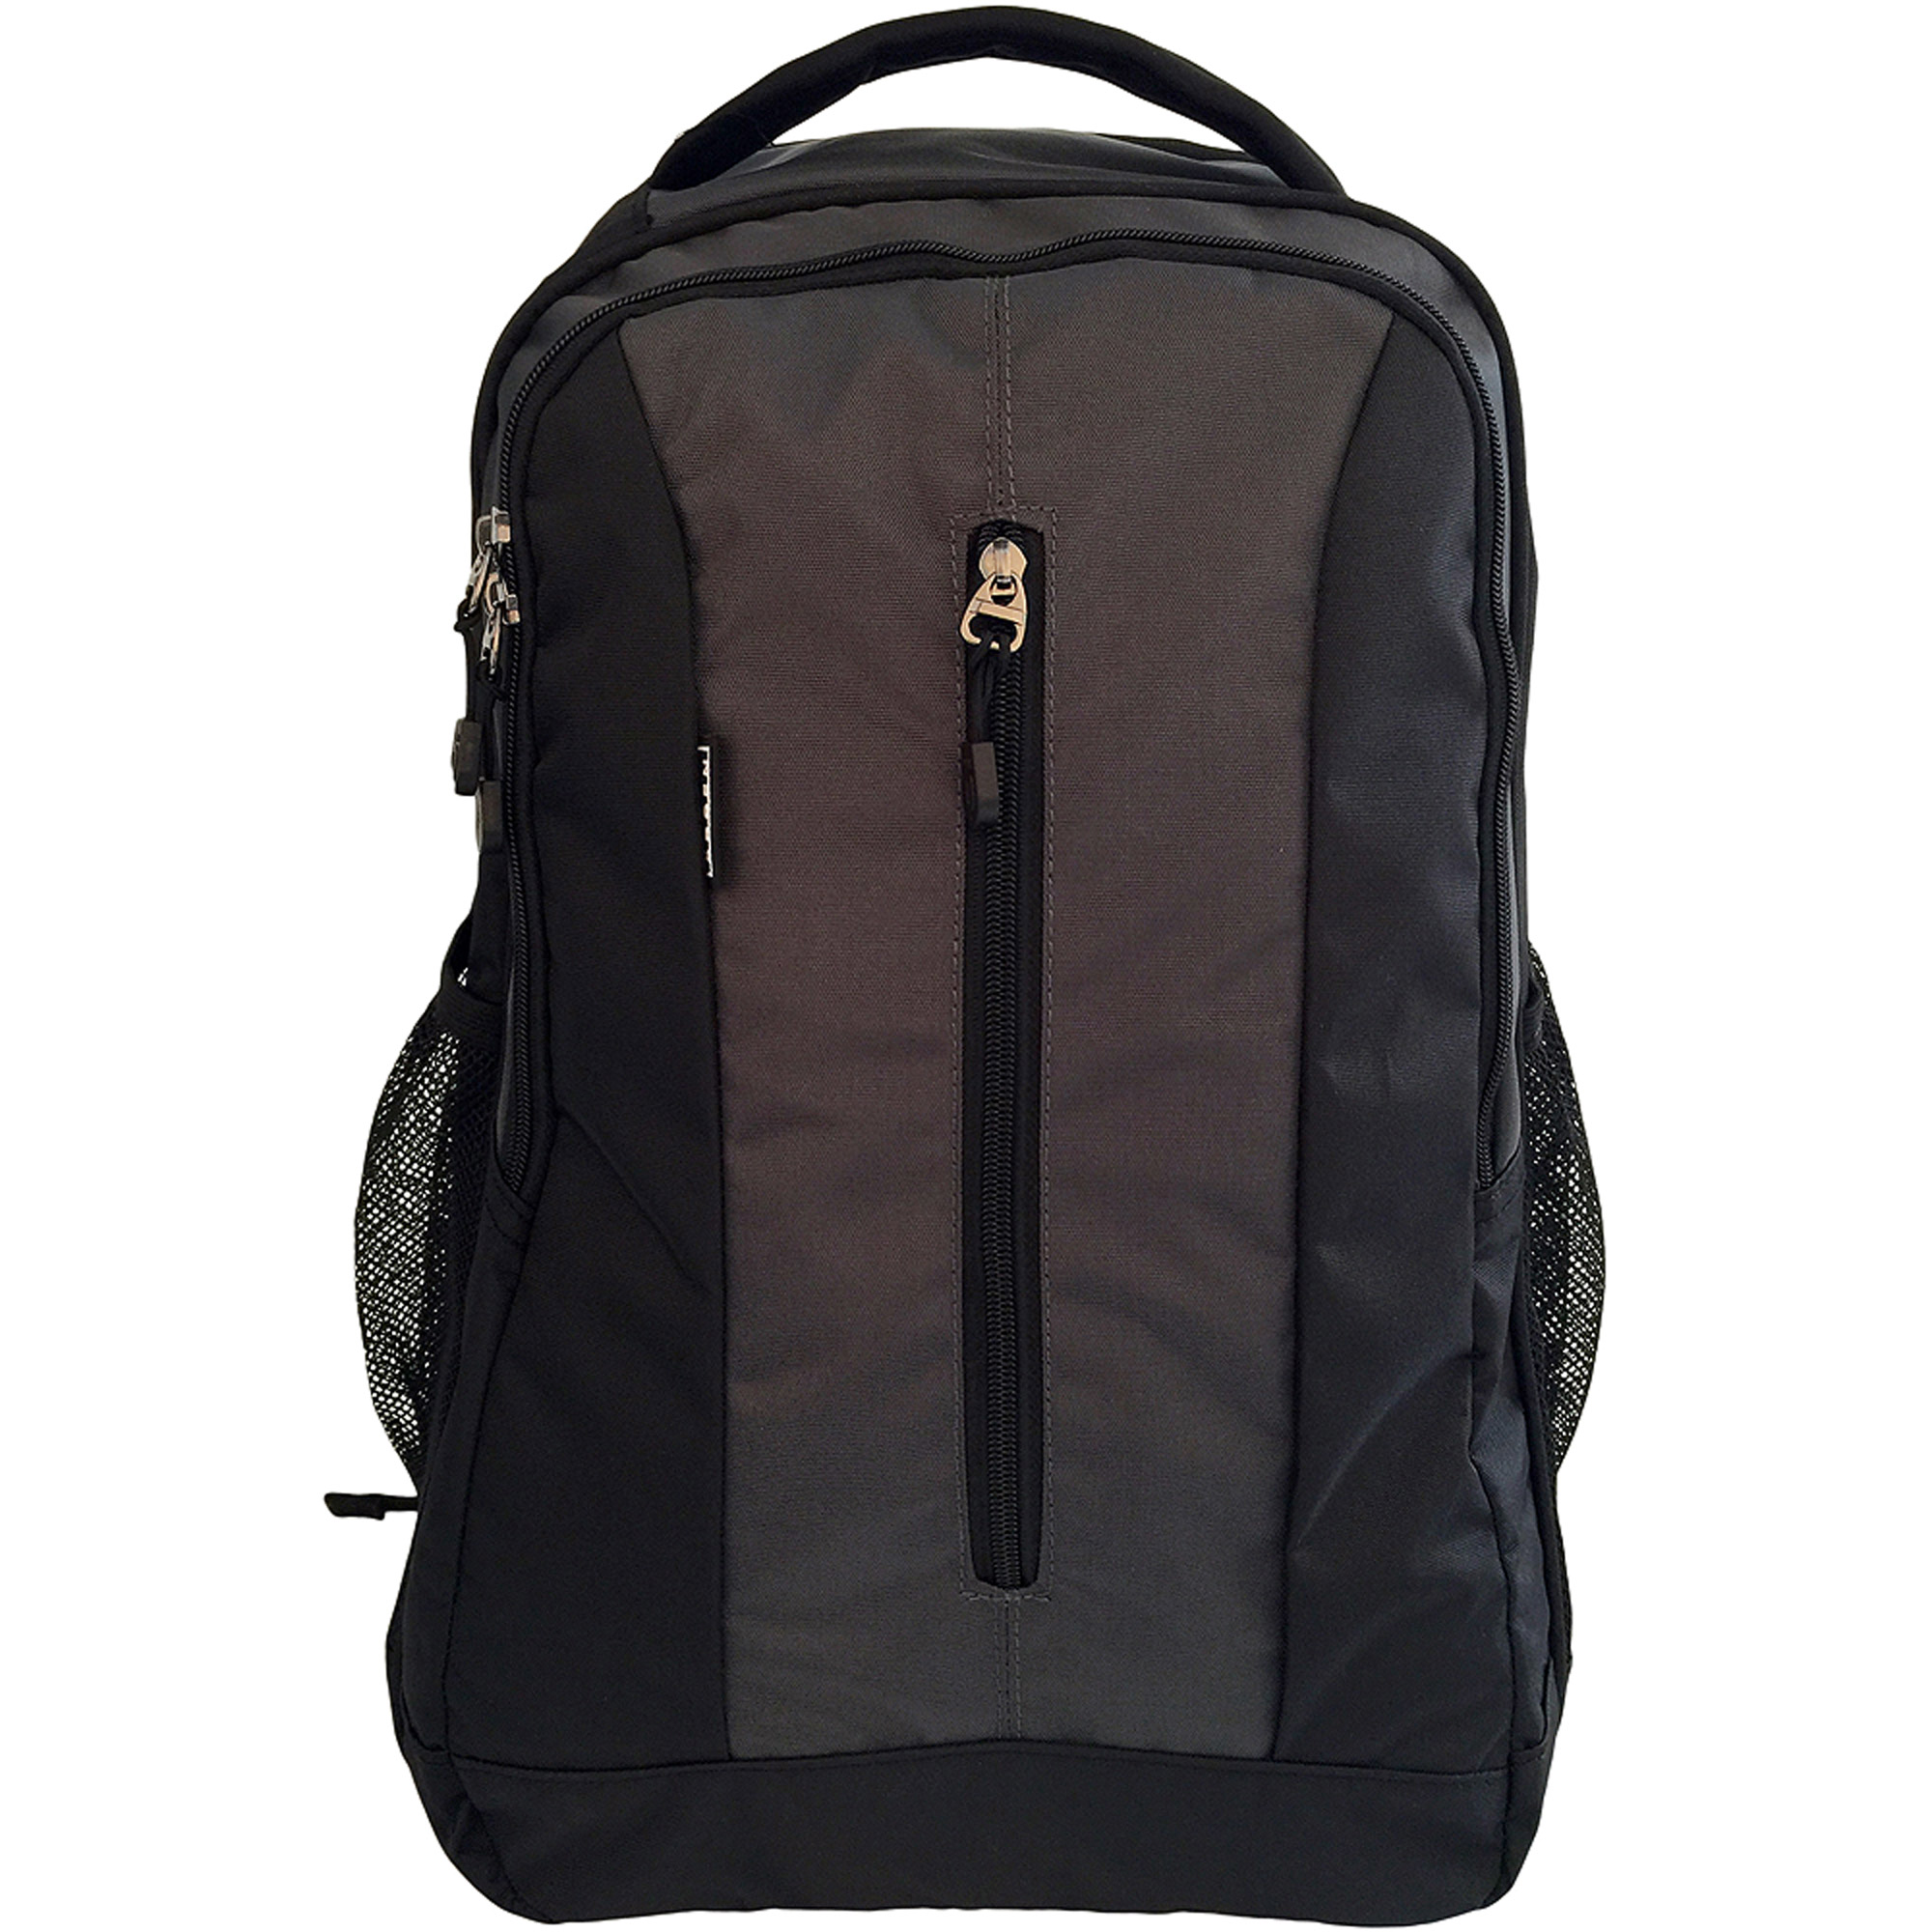 "ORBEN Vertical Zip Laptop Backpack, Large Compartment Fits 15"" Laptop Water Bottle Pocket for School Work Outdoor Black"